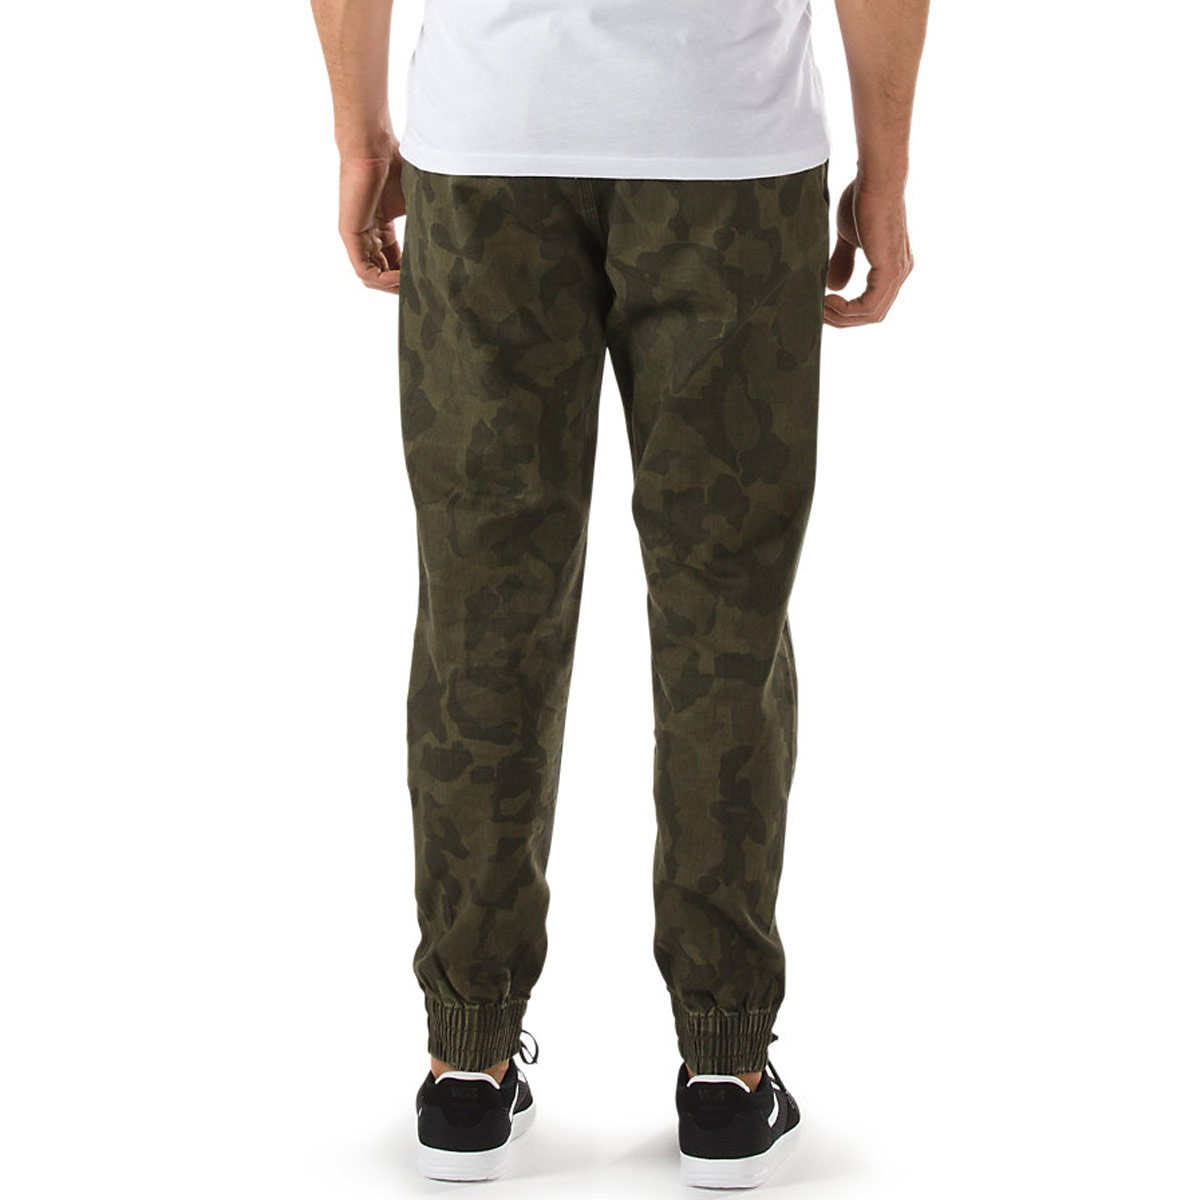 f0c1740243 Vans Excerpt Pegged Chino Jogger Pants - Bubble Camo